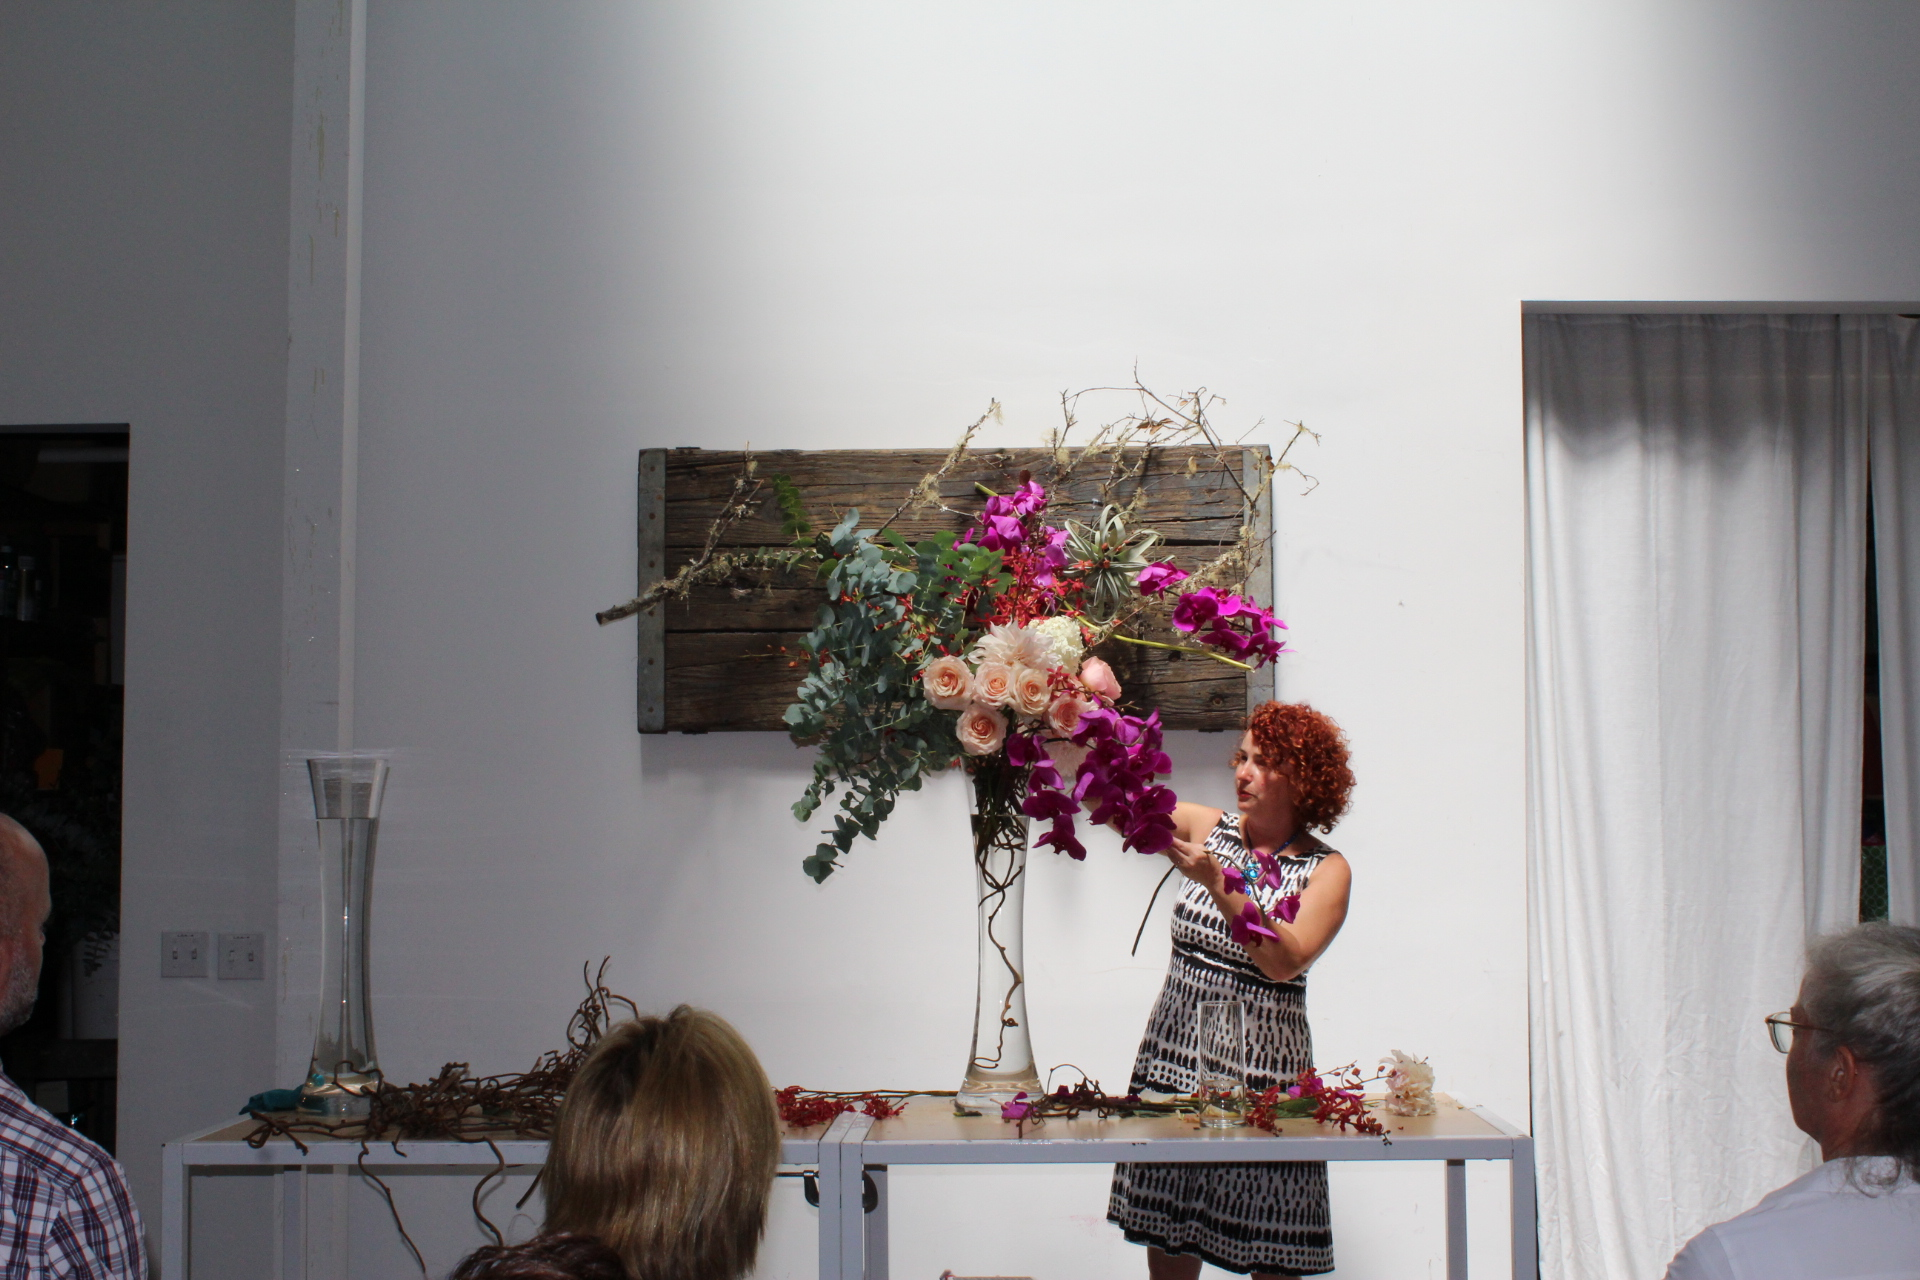 Natasha Lisita demonstrating a large centerpiece